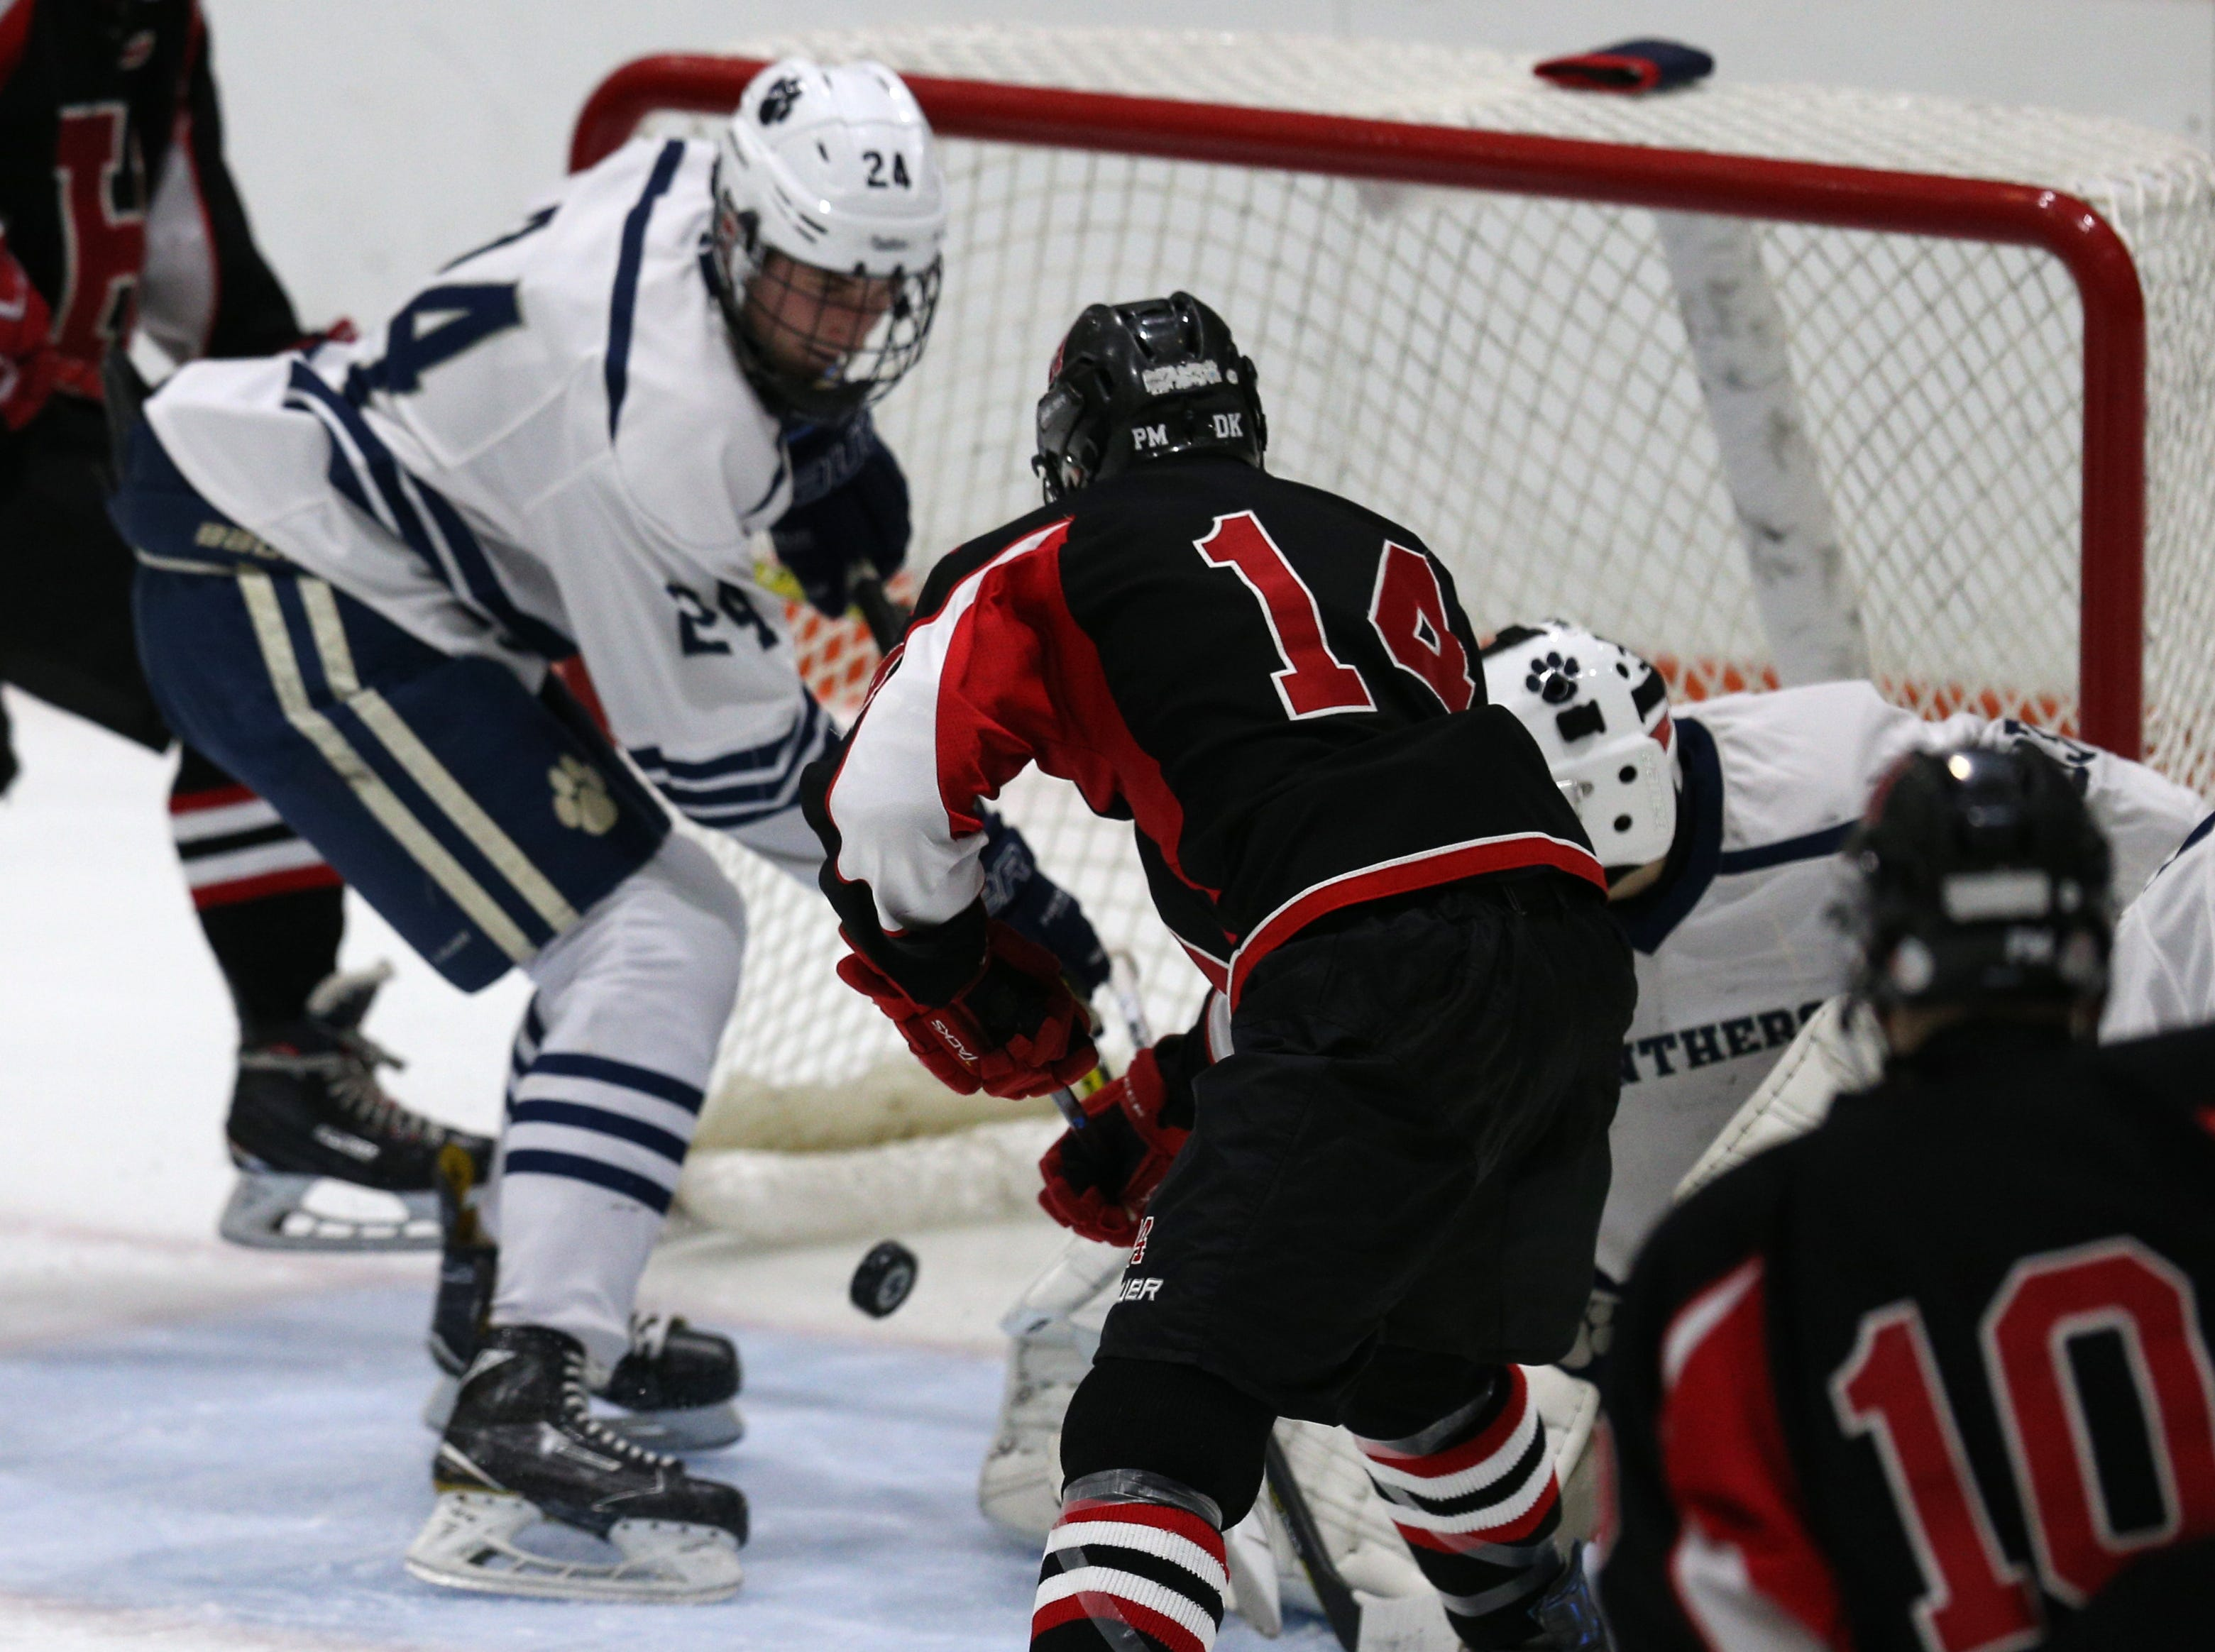 Hilton's Jake Lantz (14) watches his shot go in for a goal against Pittsford.